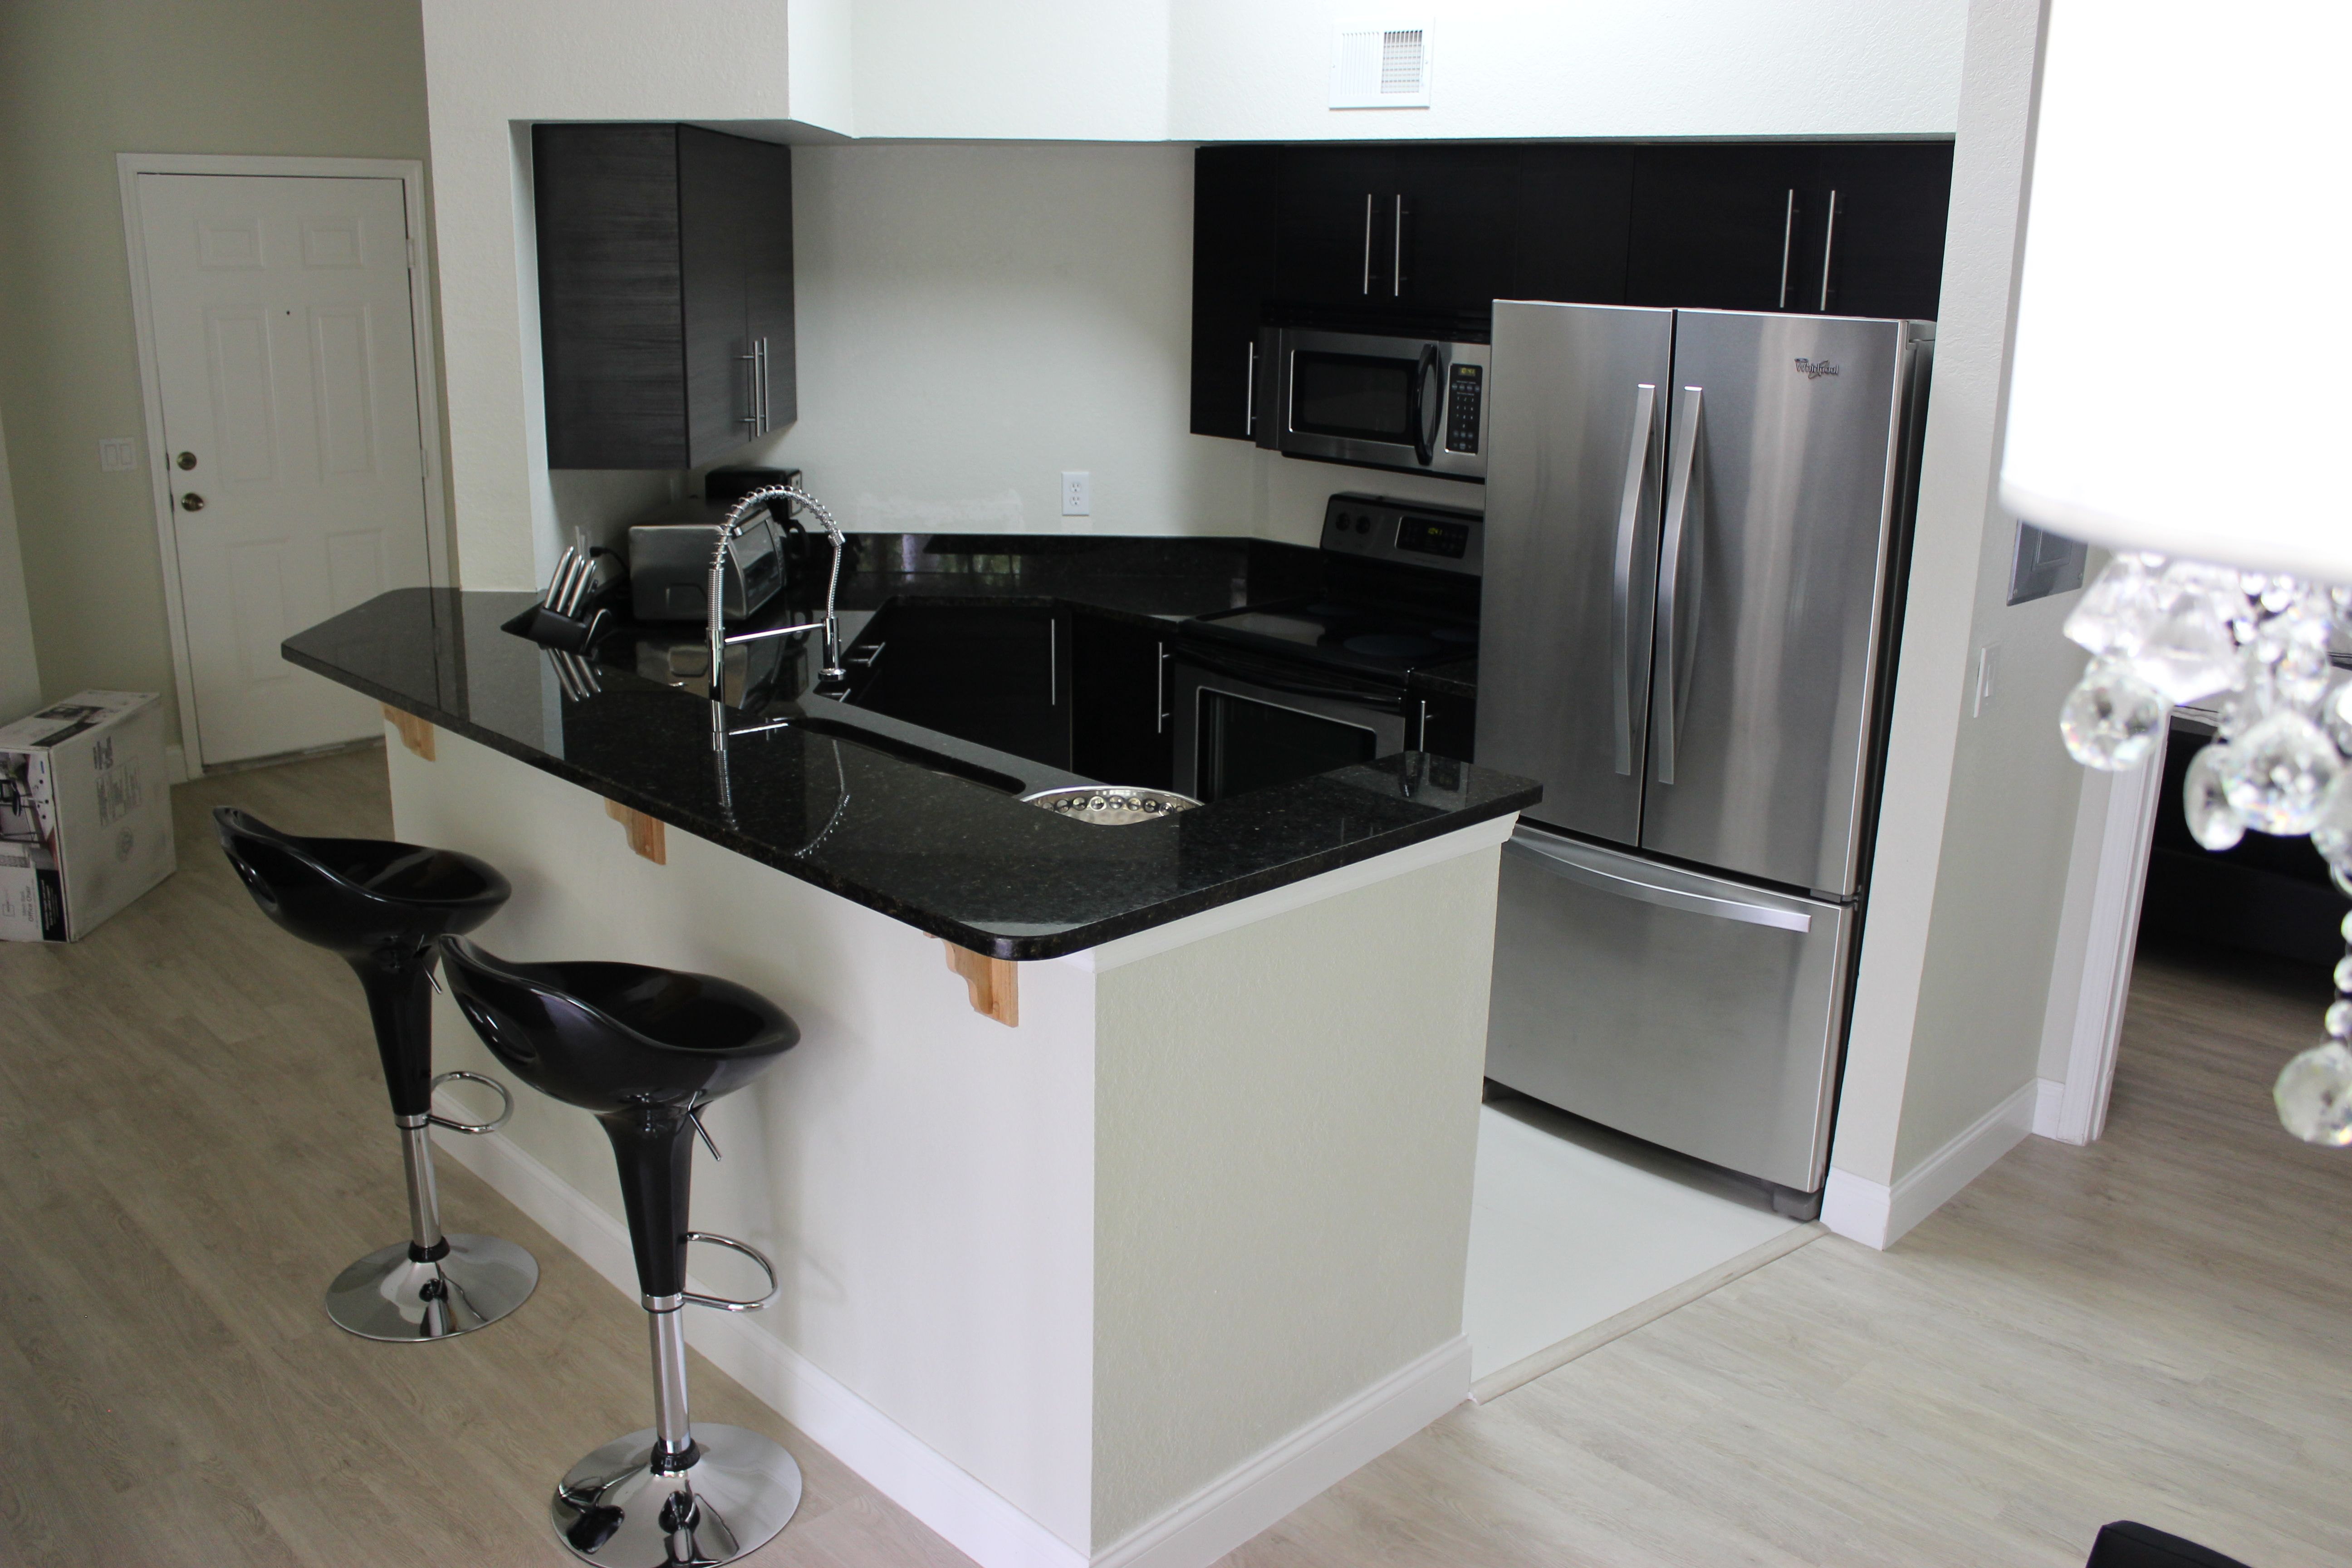 Kitchens With All Utilities Included In Orlando Corporate Housing Furnished Apartment Furnishings